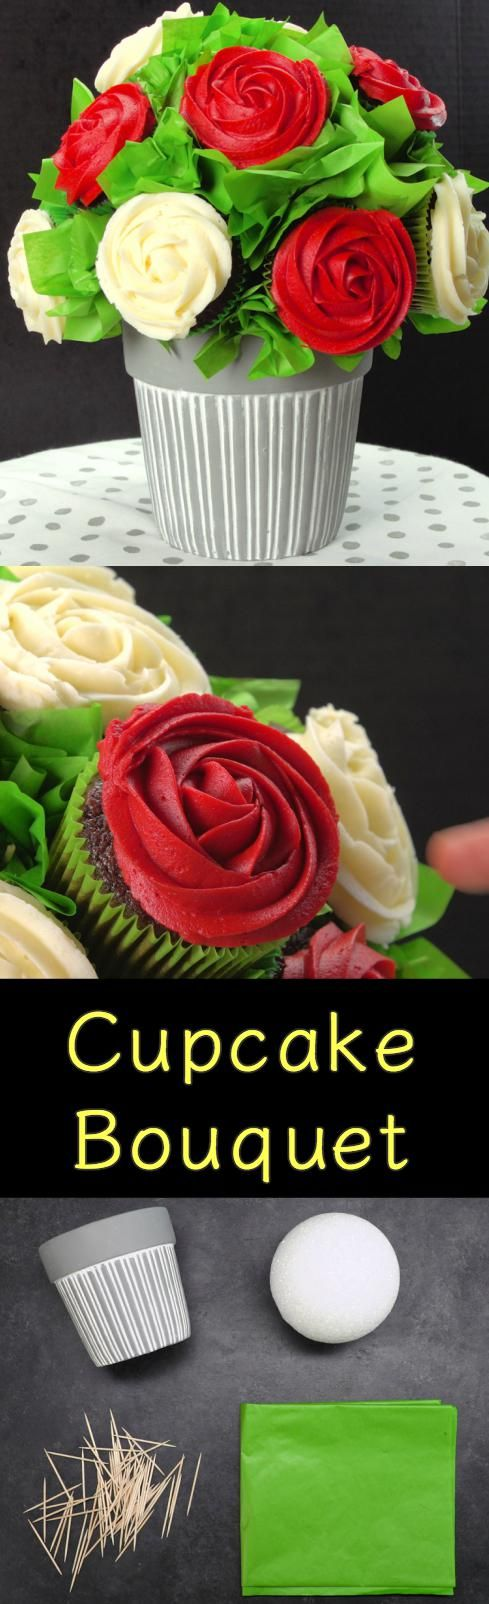 Don't buy it - make it. Cupcake Bouquets are easy to make and wonderful to receive as gifts. You get to eat the cupcakes and have a pot left over for real flowers and plants.